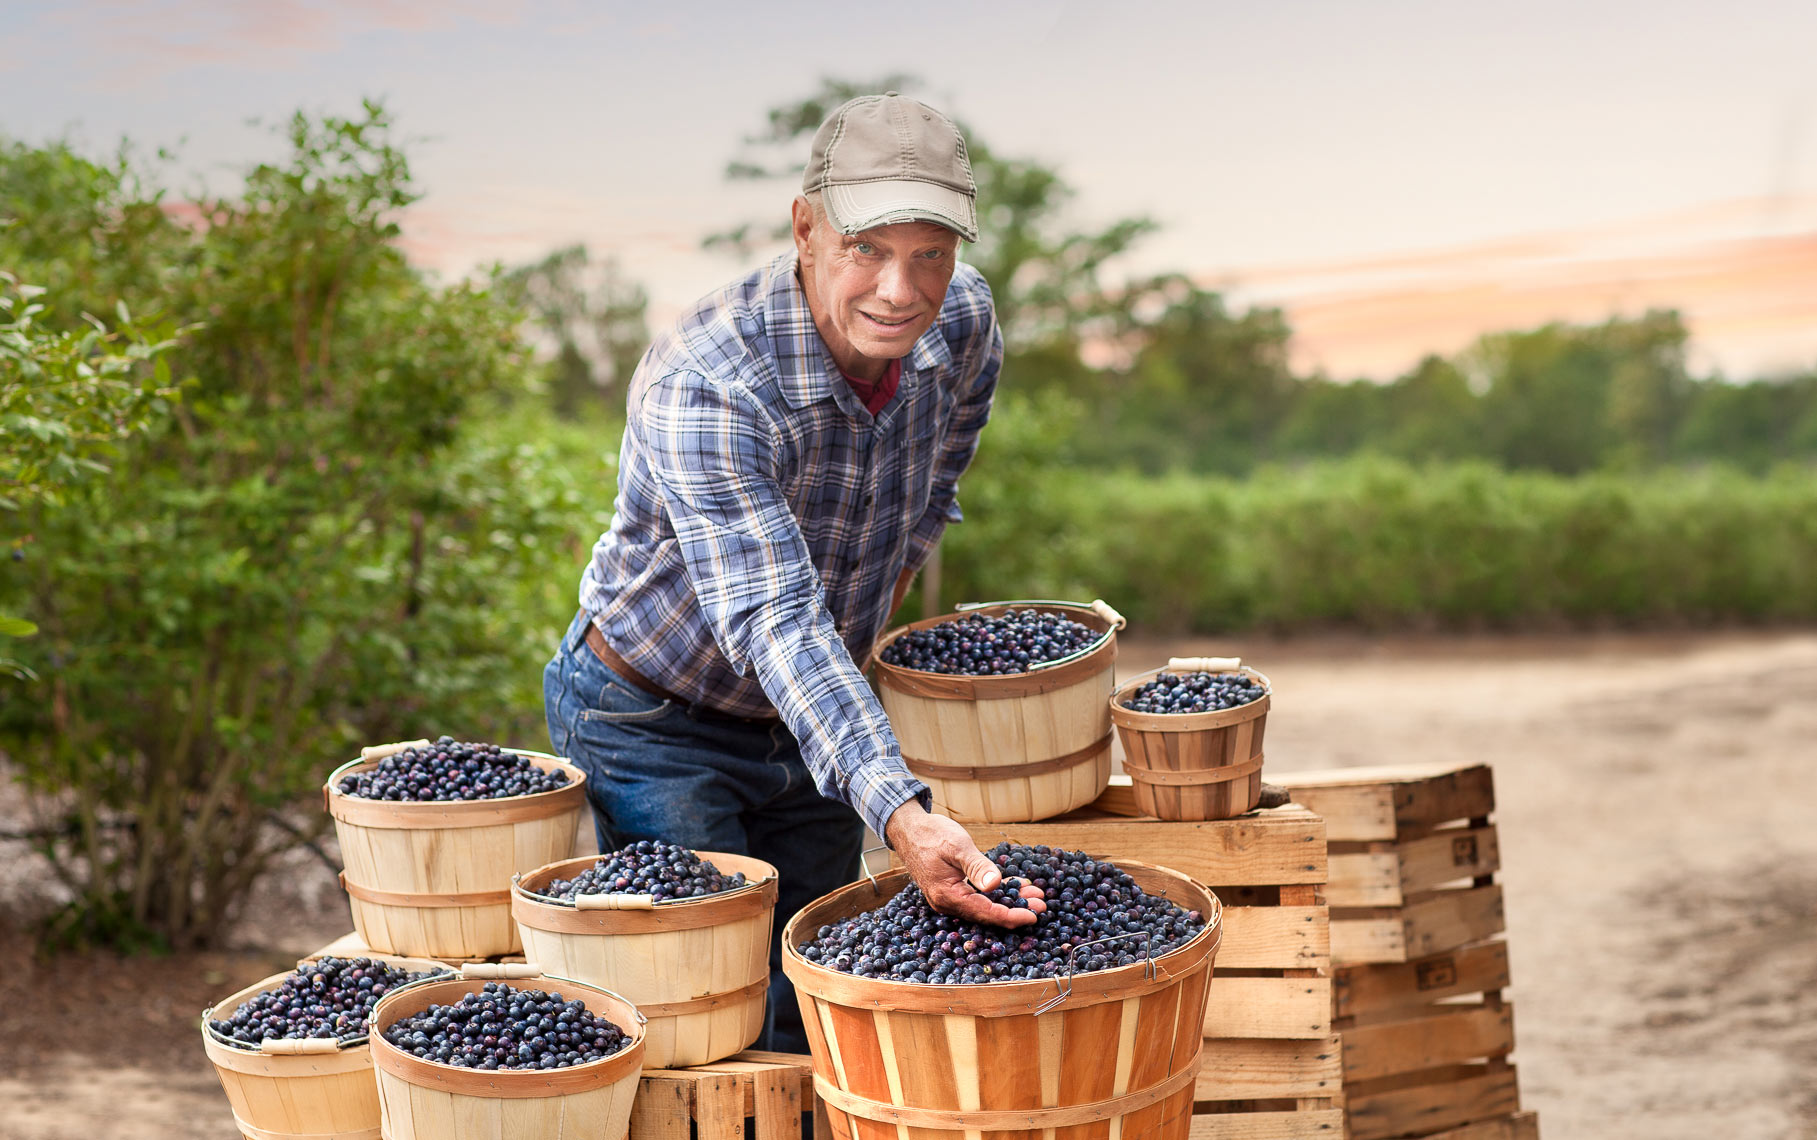 Jason Risner Product Photographer: HEB Blueberries in San Antonio Texas